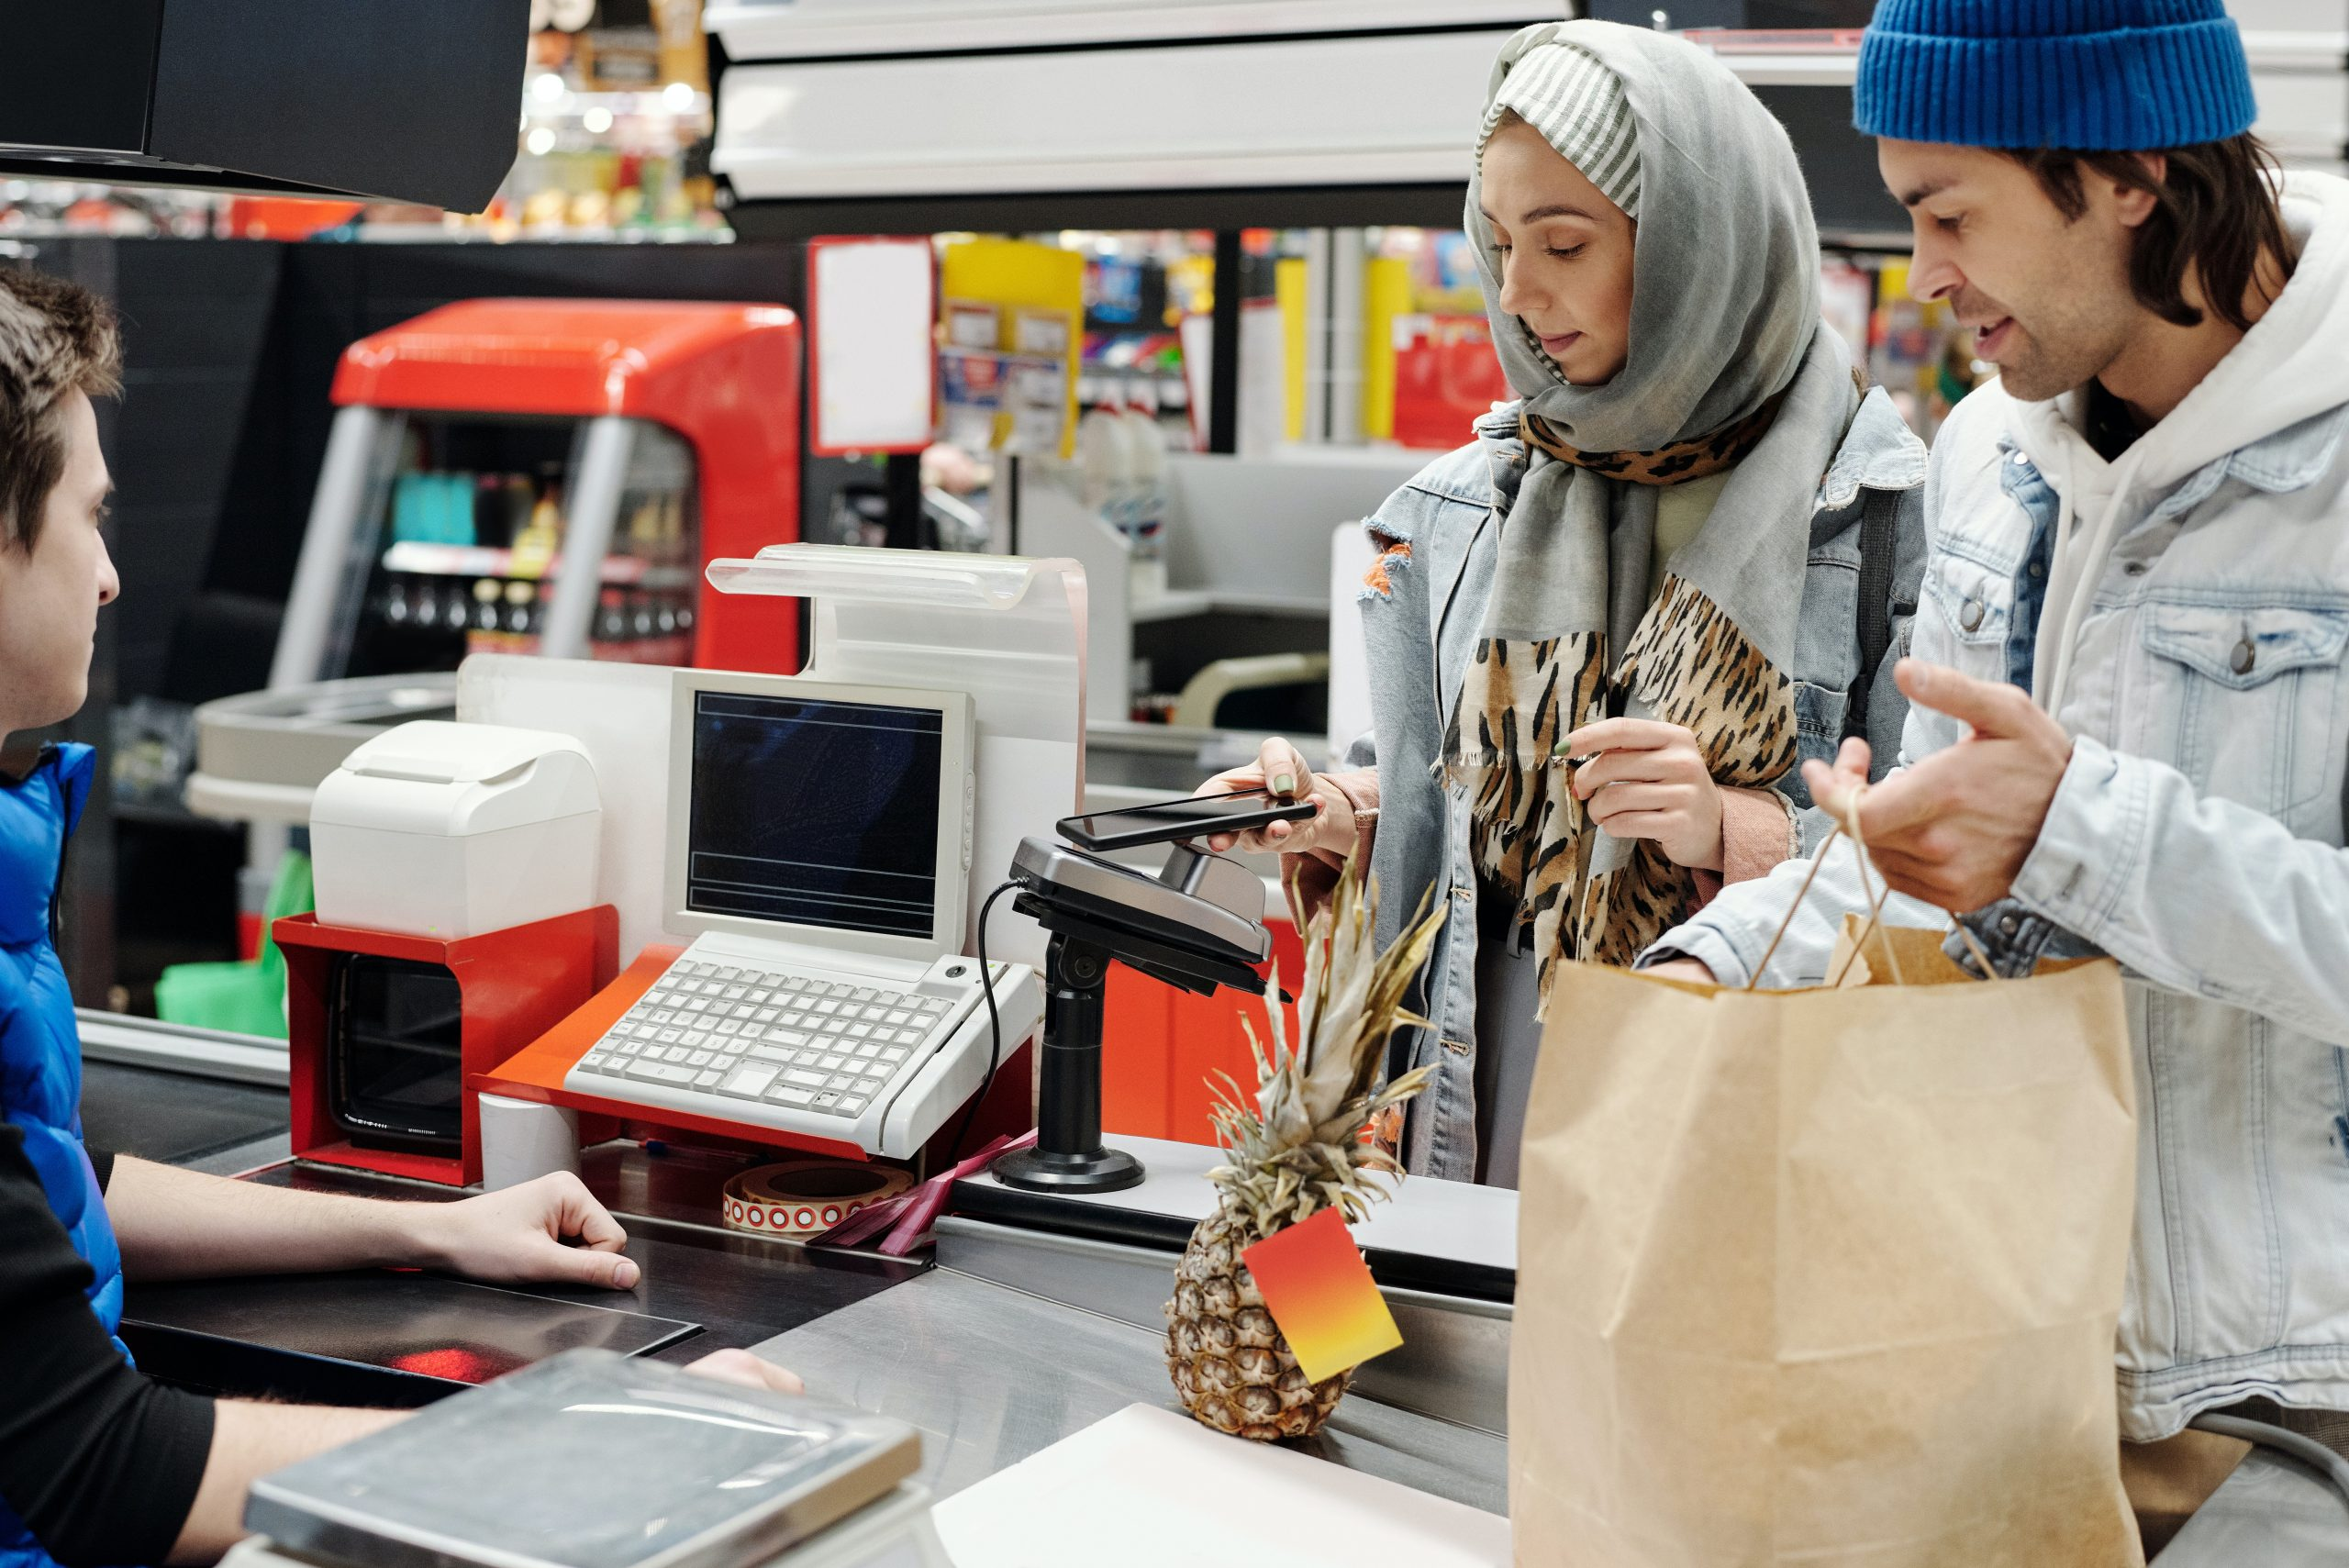 rfid trends for digital transformation in retail stores 2021